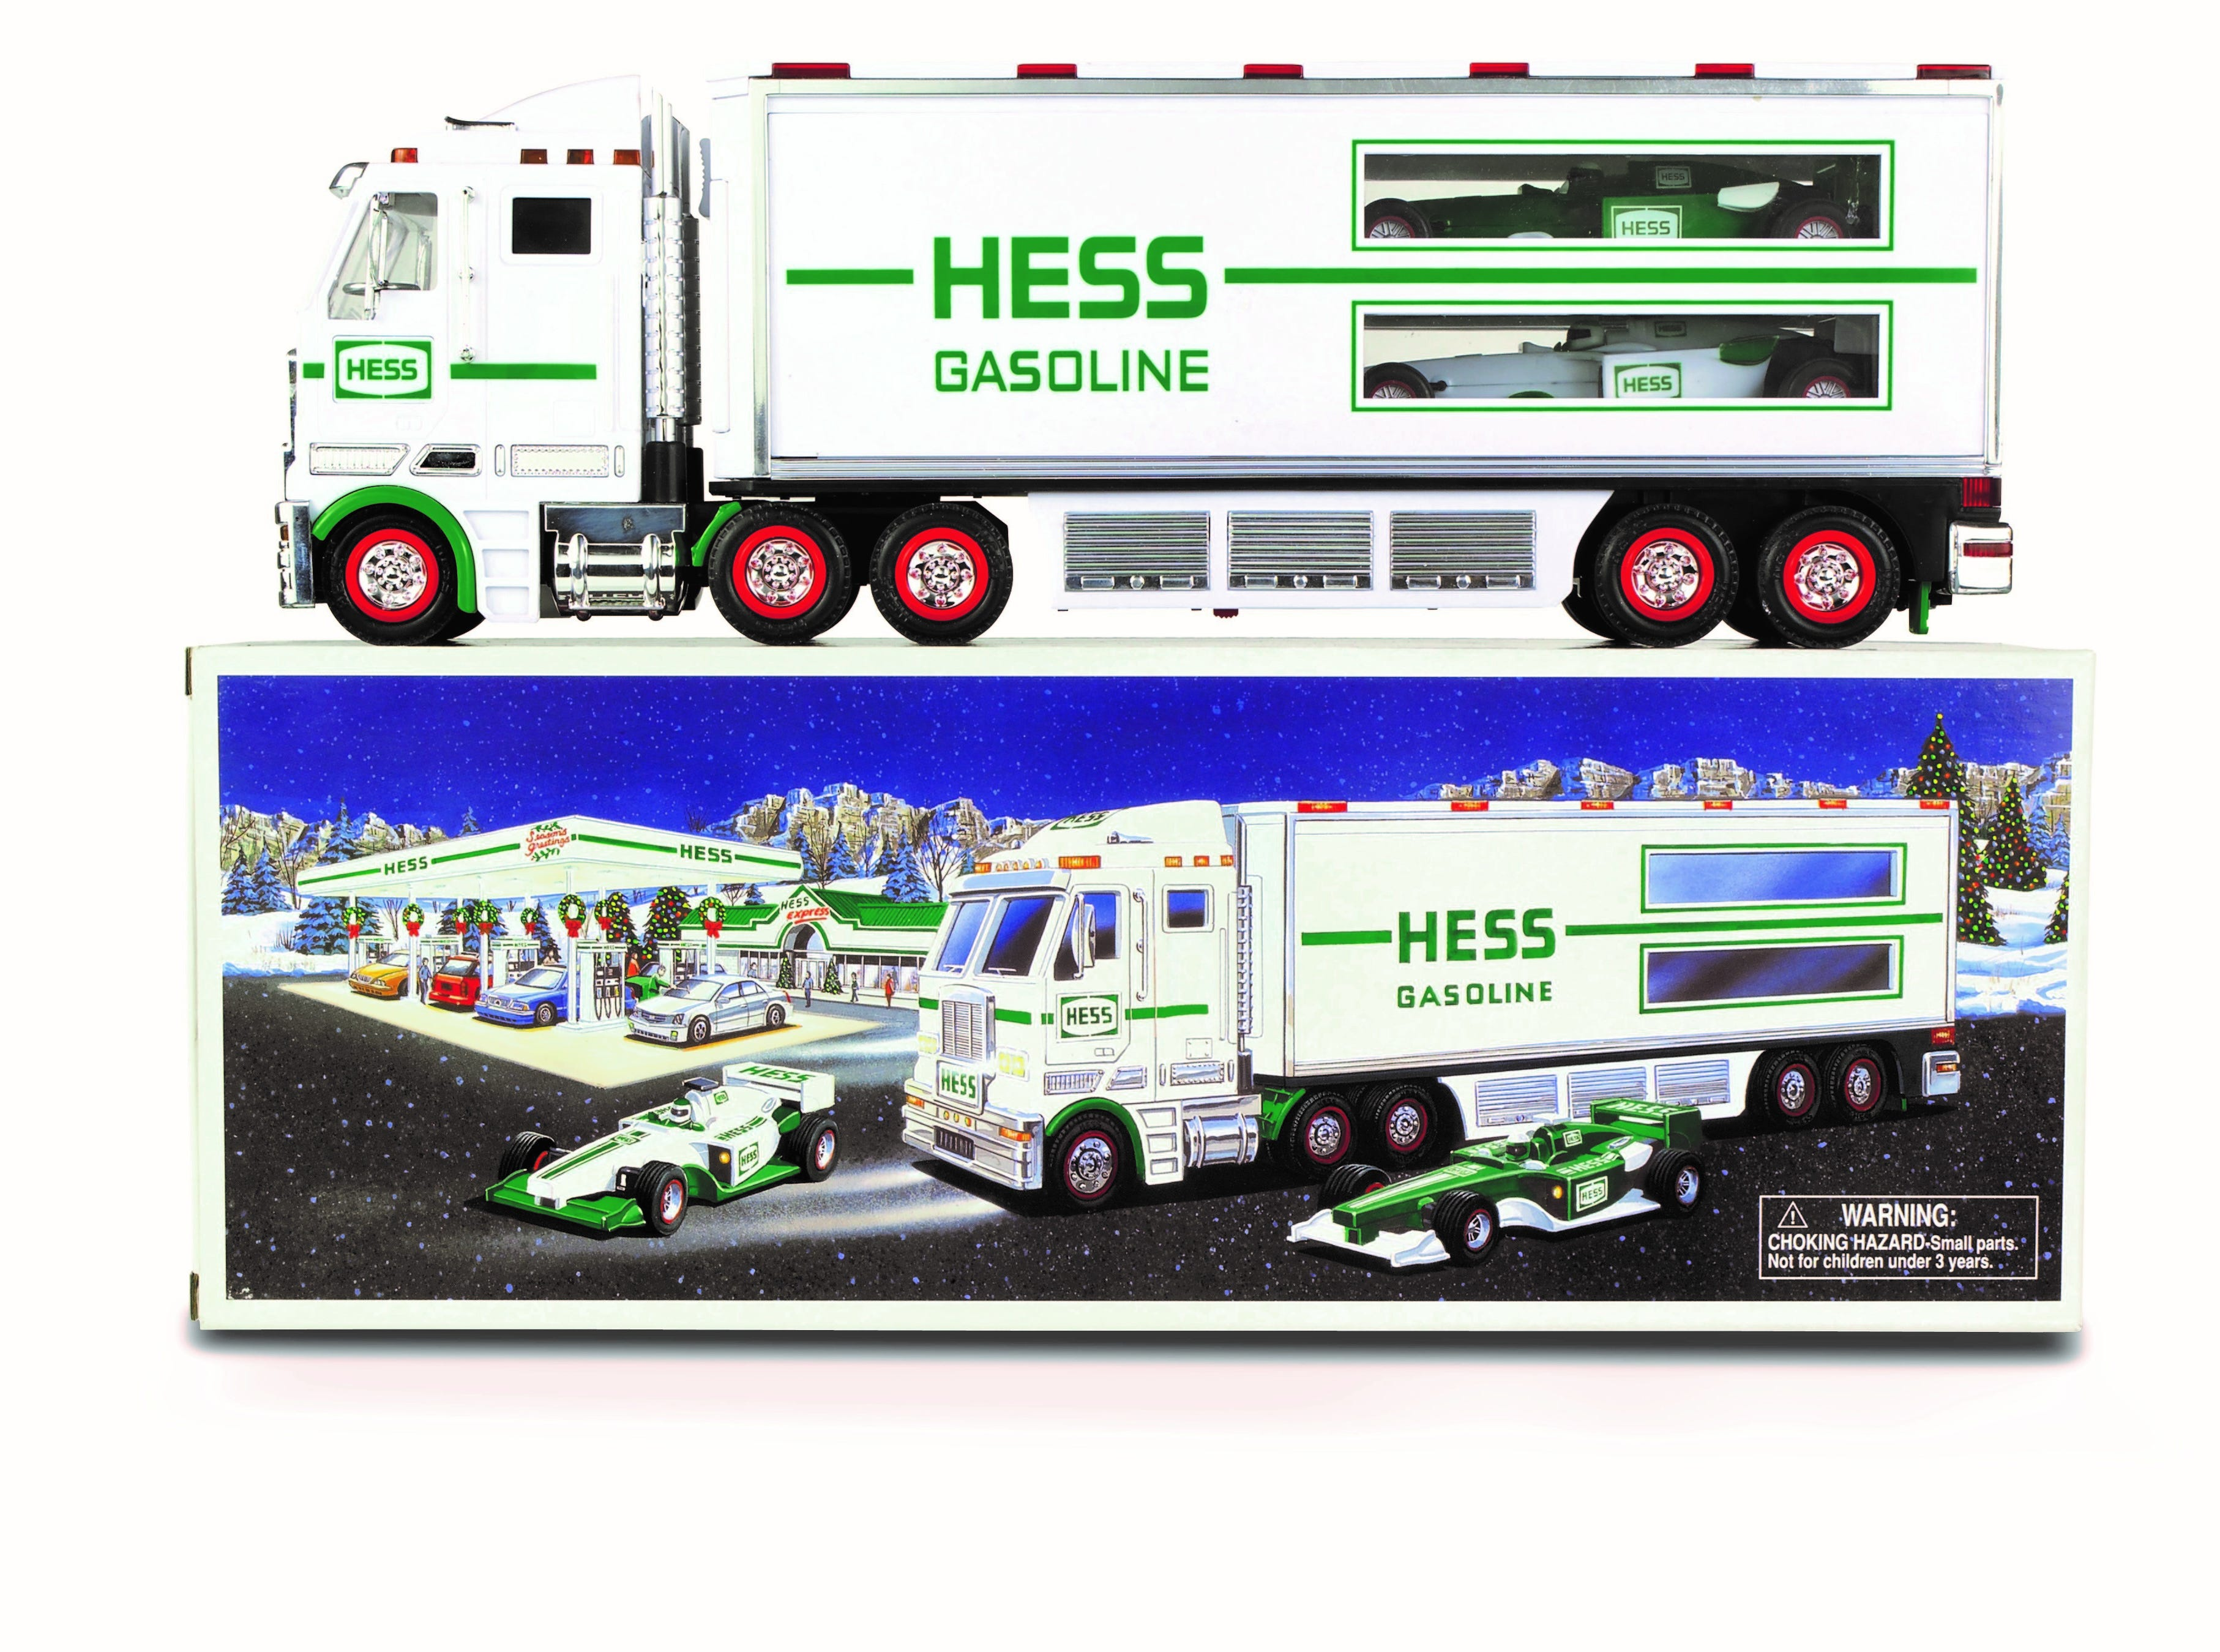 The 2003 Hess toy truck